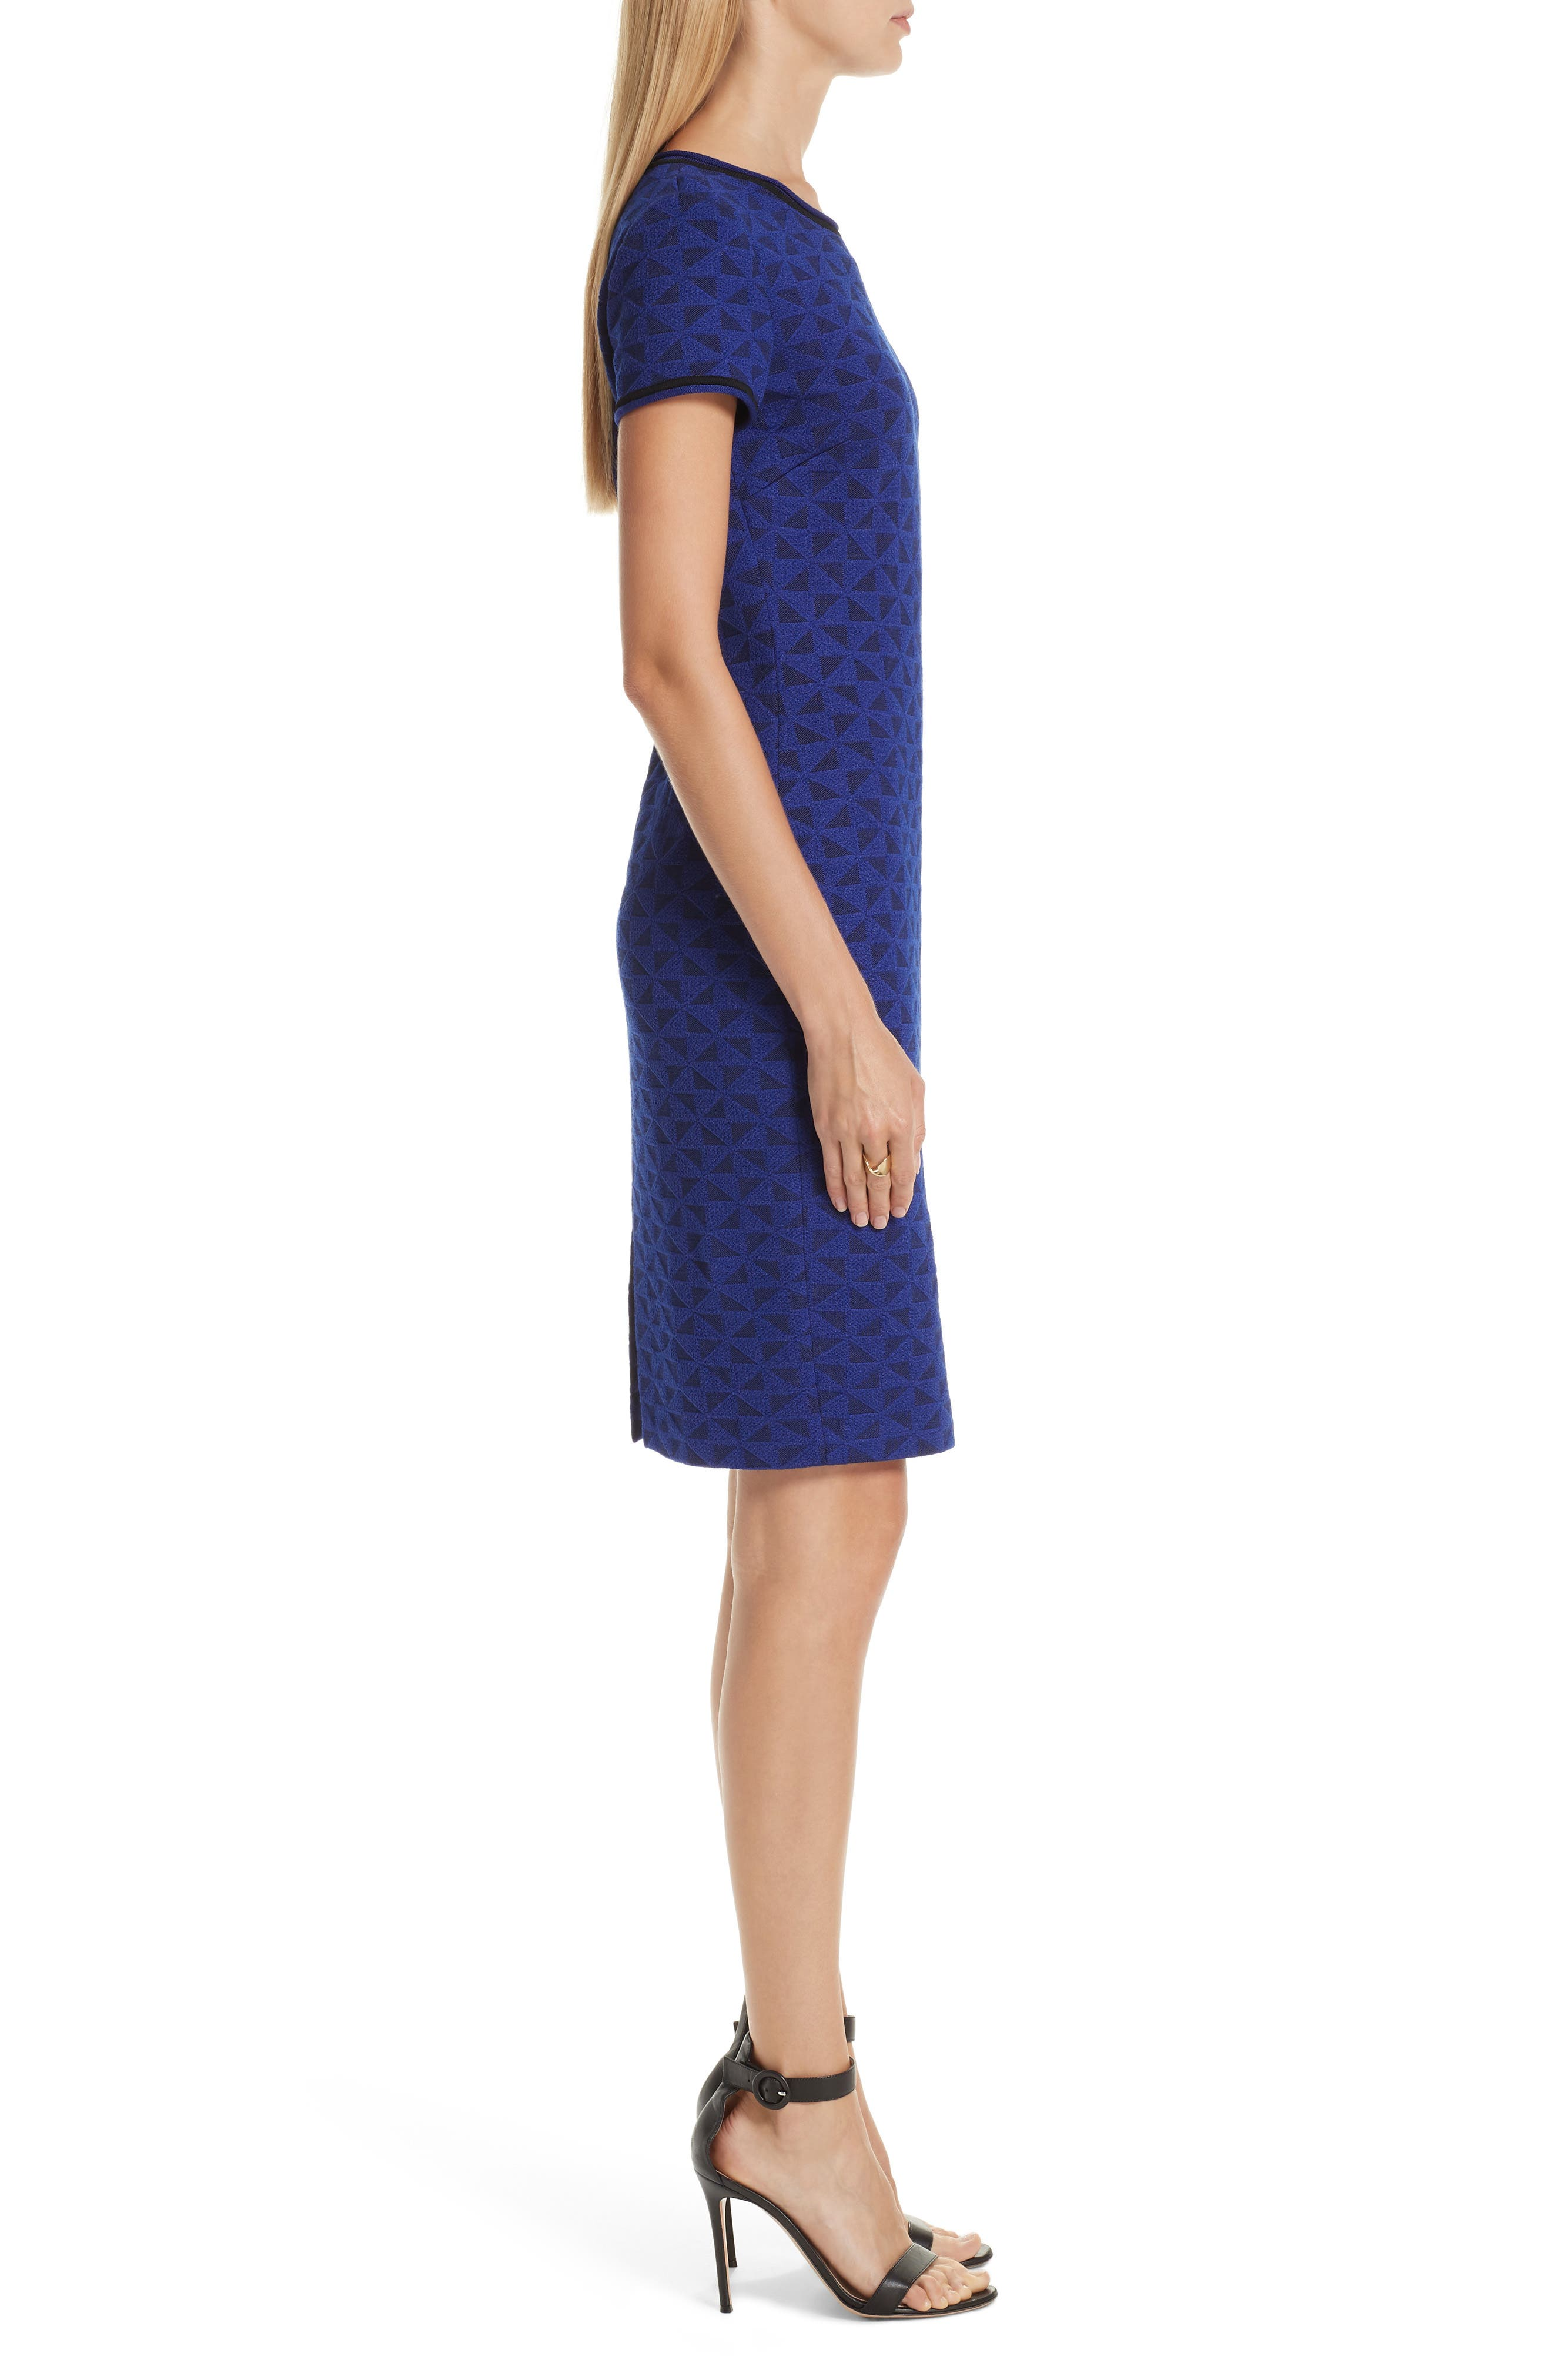 ST. JOHN COLLECTION, Micro Geo Blister Knit Sheath Dress, Alternate thumbnail 4, color, CAVIAR/ SAPPHIRE